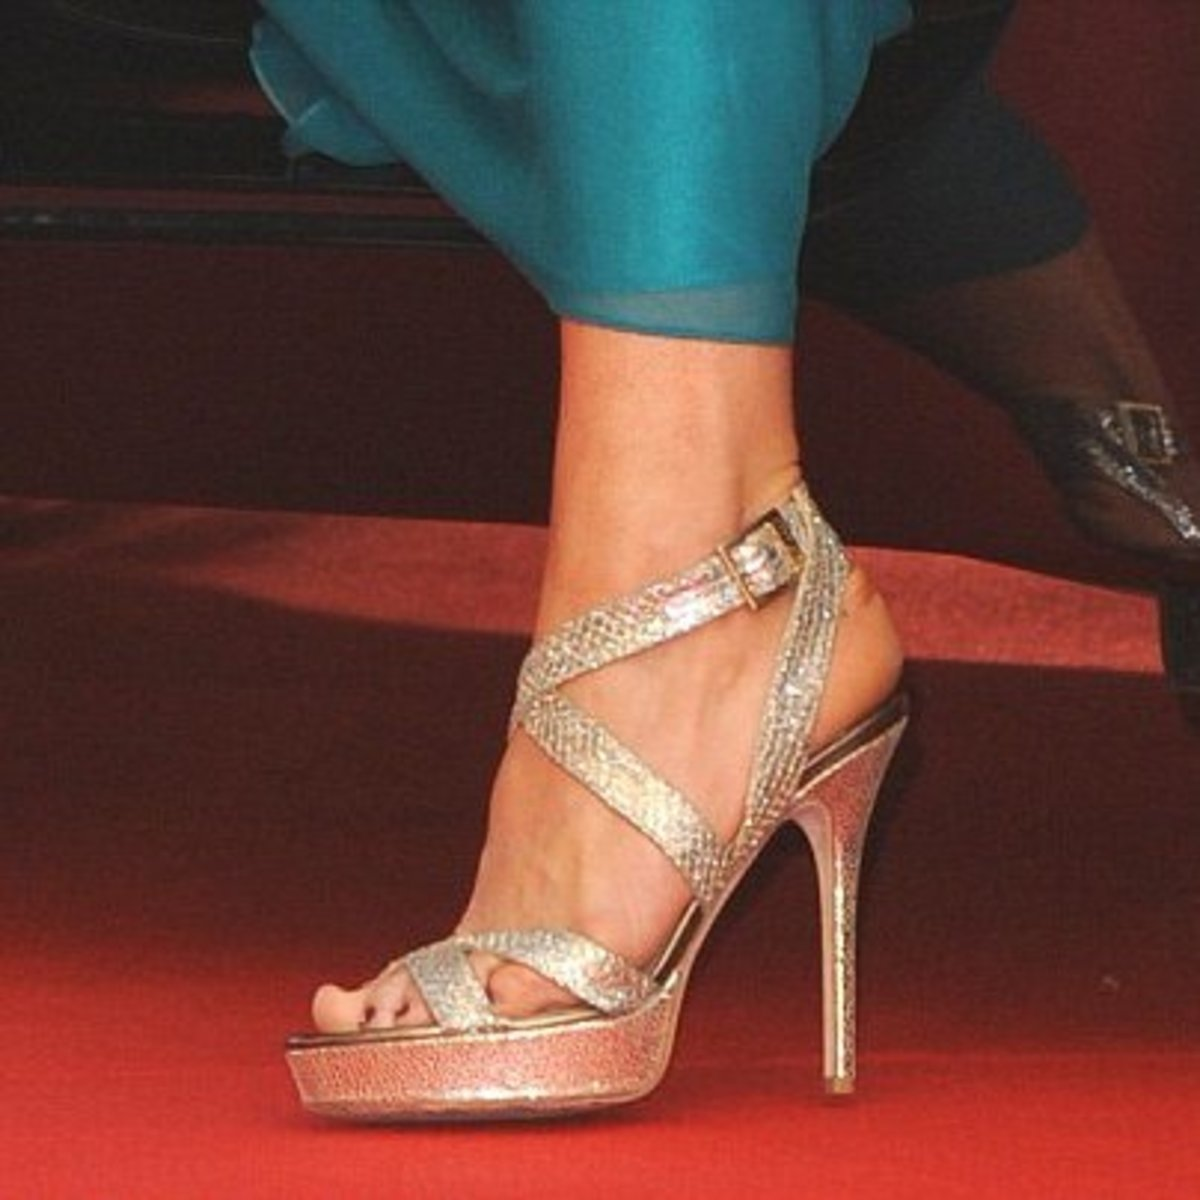 Everyone knew they were in for a stunning spectacle the minute Kate stepped out of the car. Her Jimmy Choo Strappy Platforms were the first to catch the public eye.